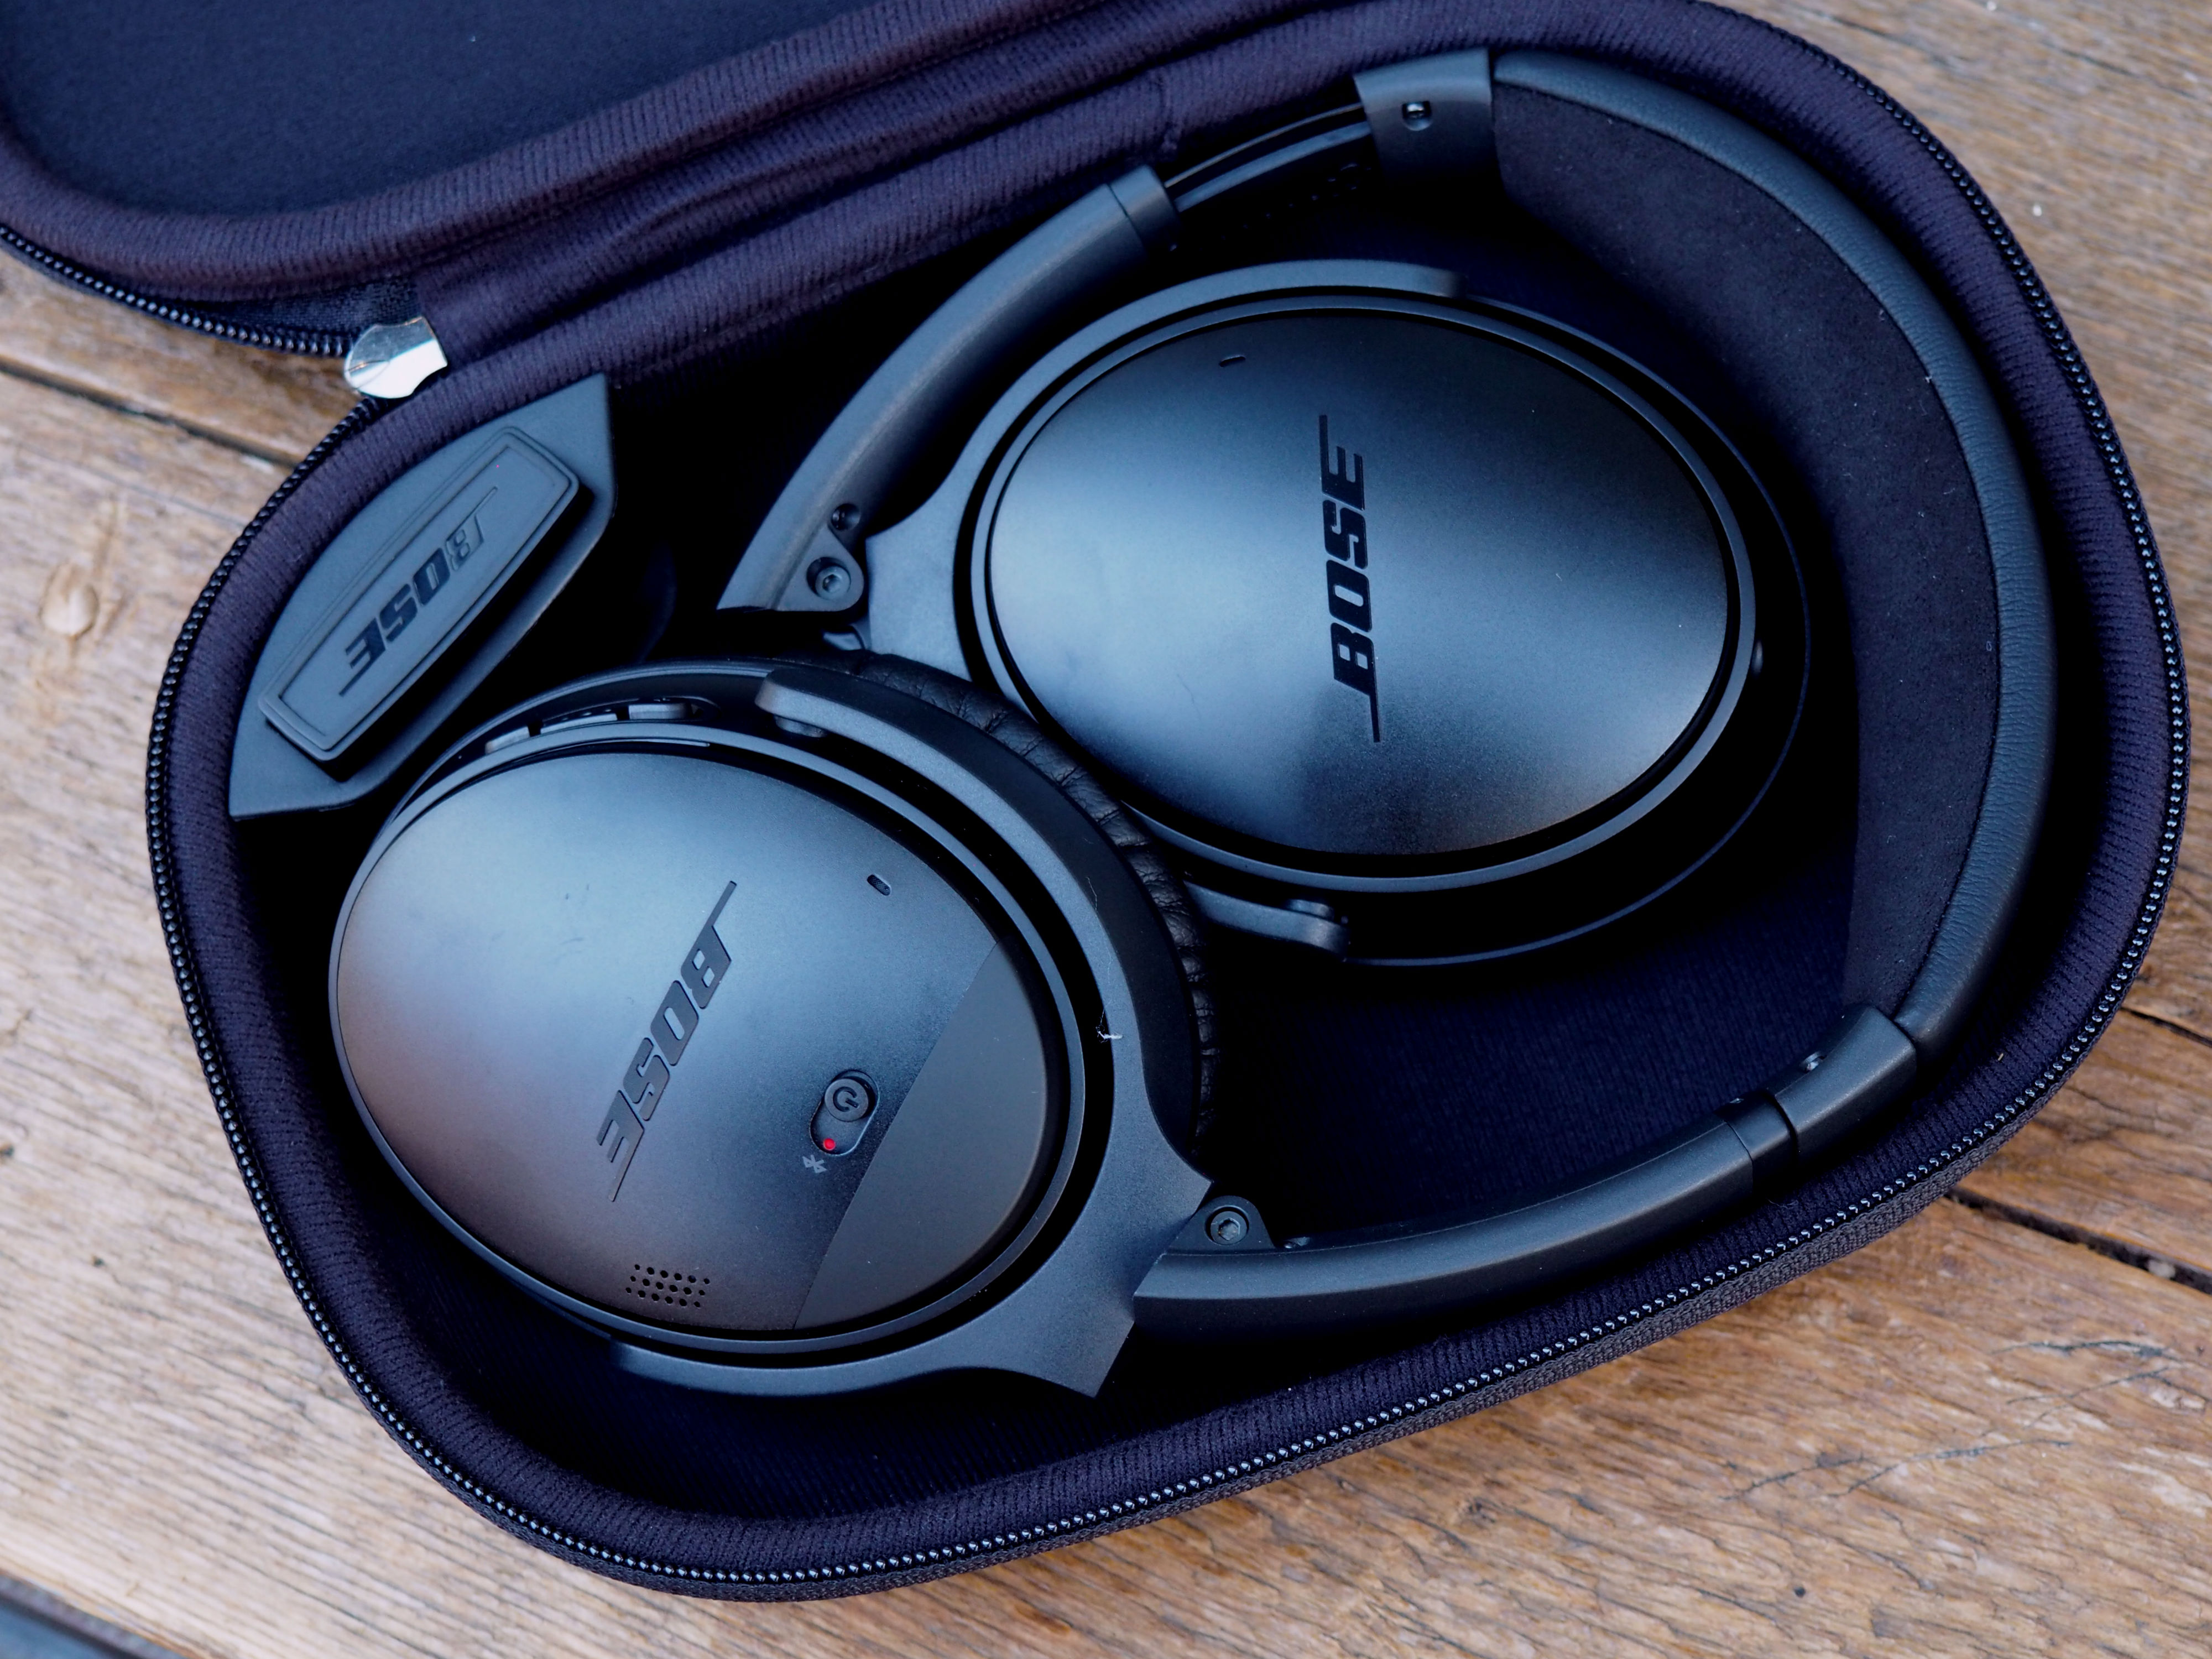 Bose's QuietComfort headphones go wireless without missing a